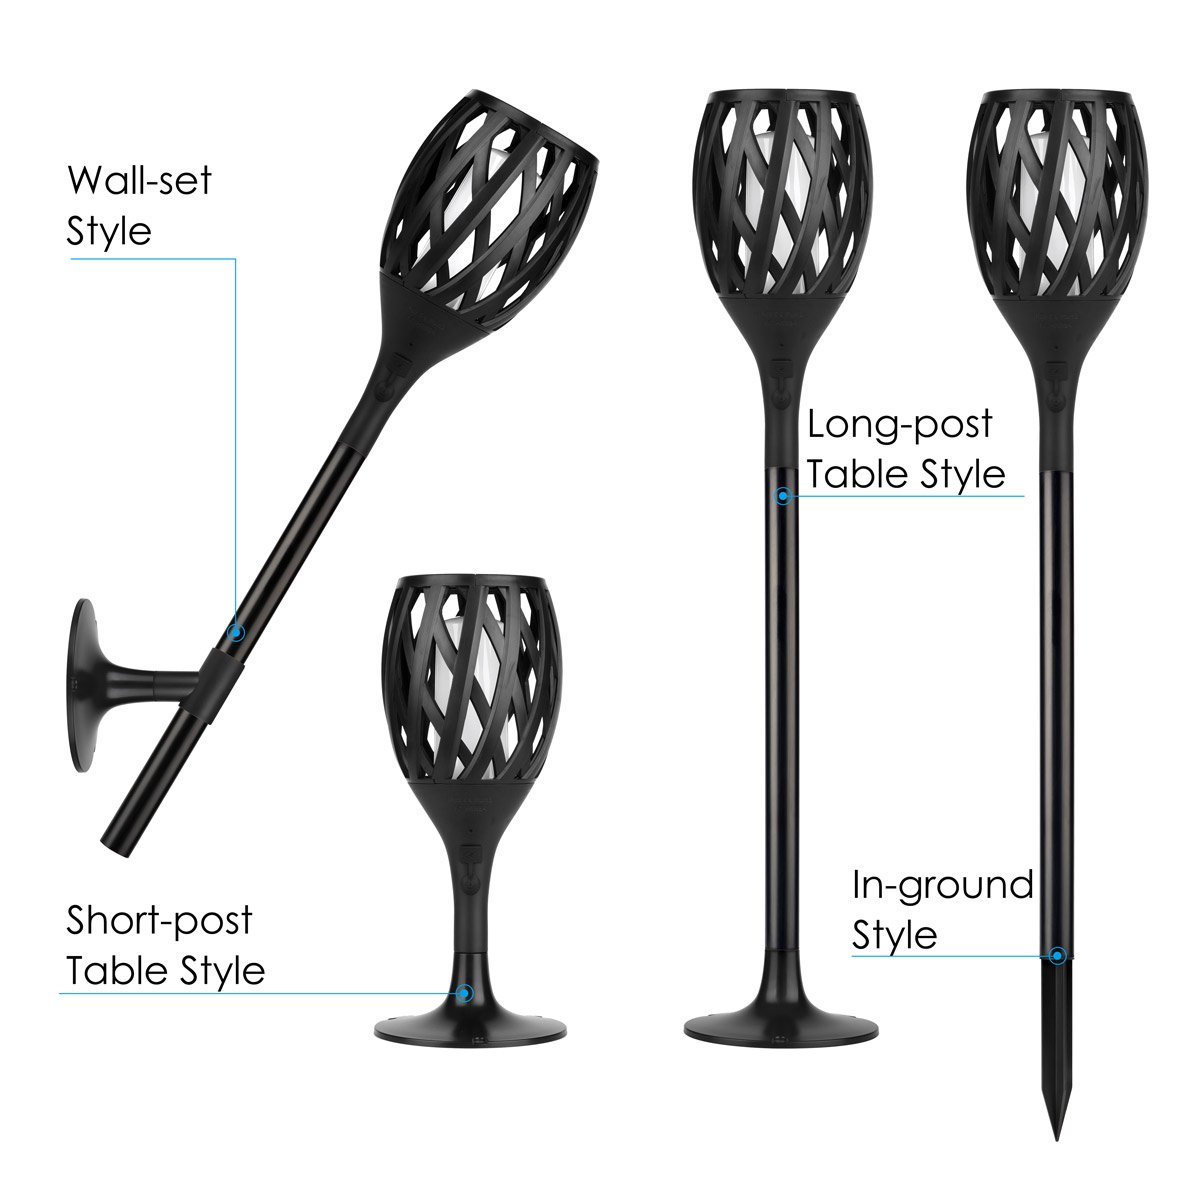 2 Solar Torch Light 3rd Generation Table and In-ground for House 3 Application Sets of Wall Garden Outdoor //Indoor Tiki Style Fire Dancing Flickering Flames Lamp with USB Charging Auxiliary